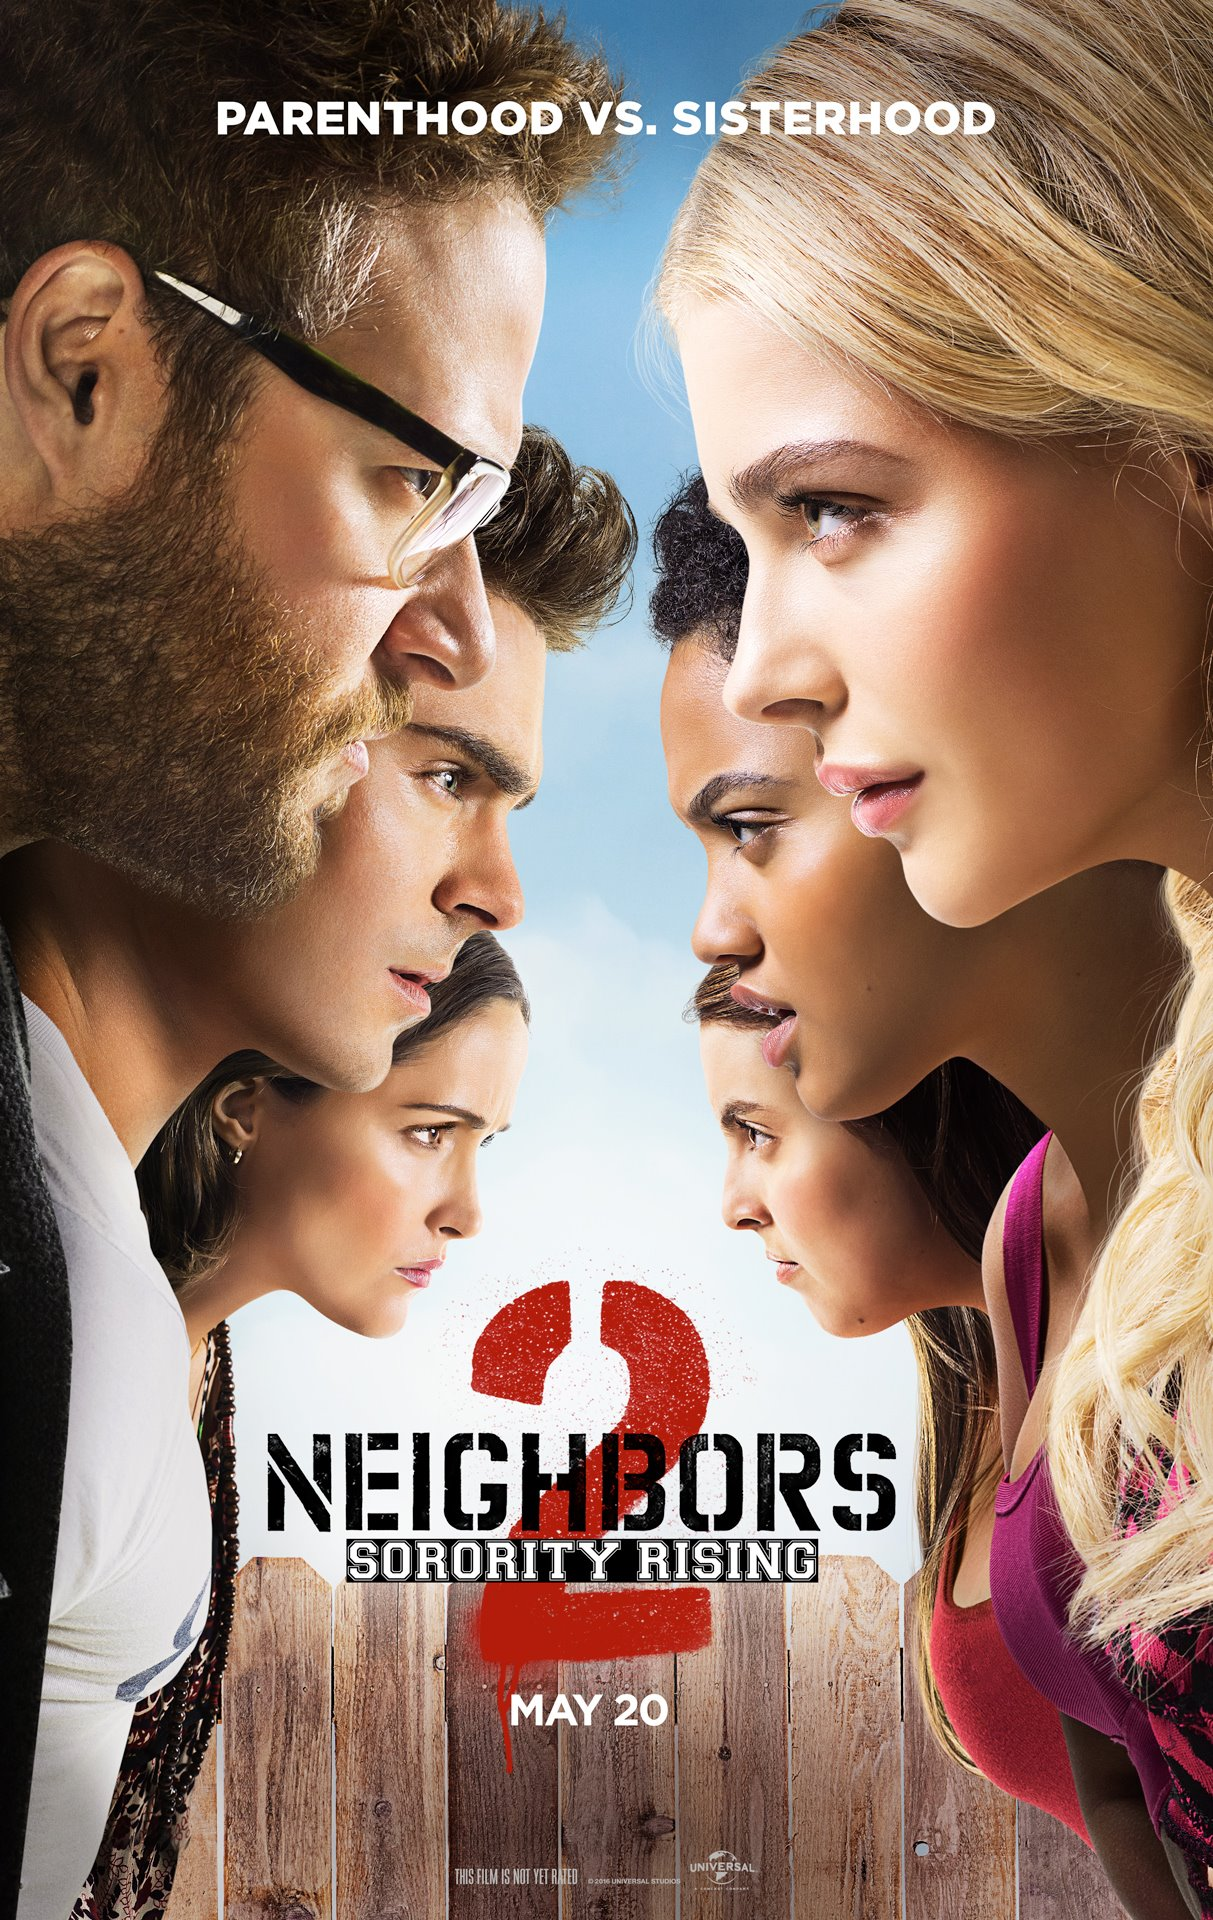 Neighbors 2: Sorority Rising - Poster